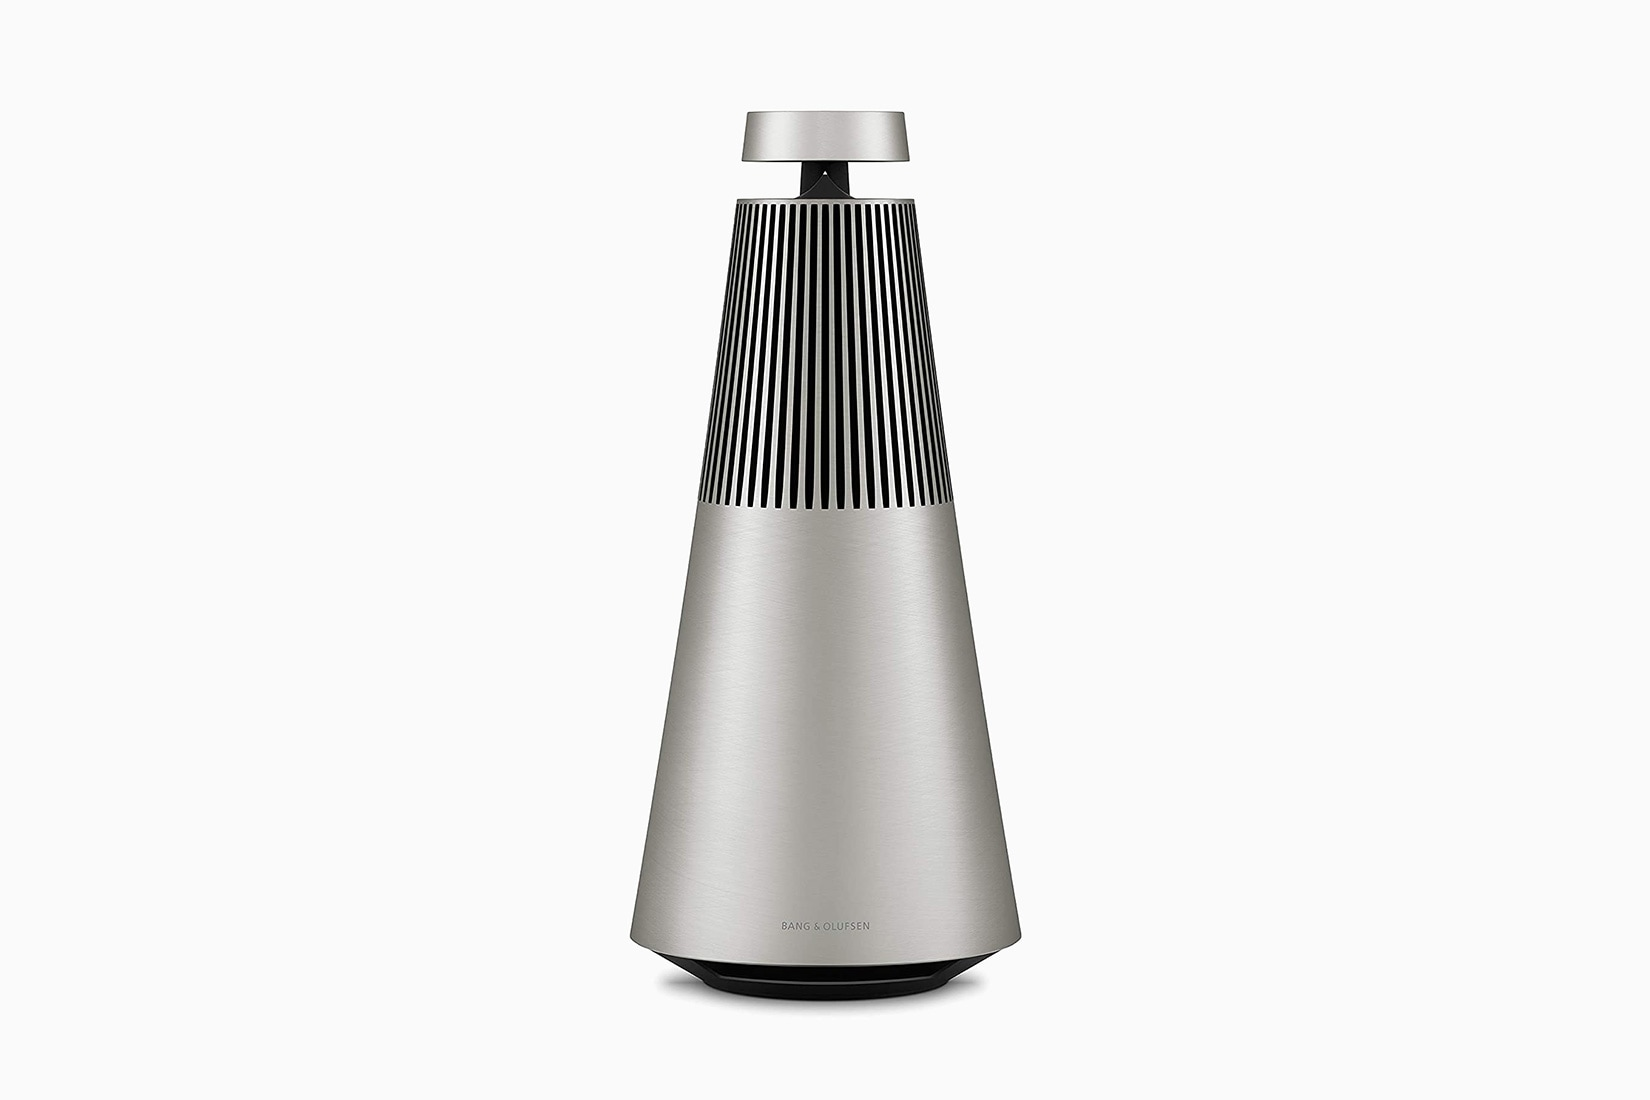 best wireless speakers bang olufsen beosound 2 - Luxe Digital